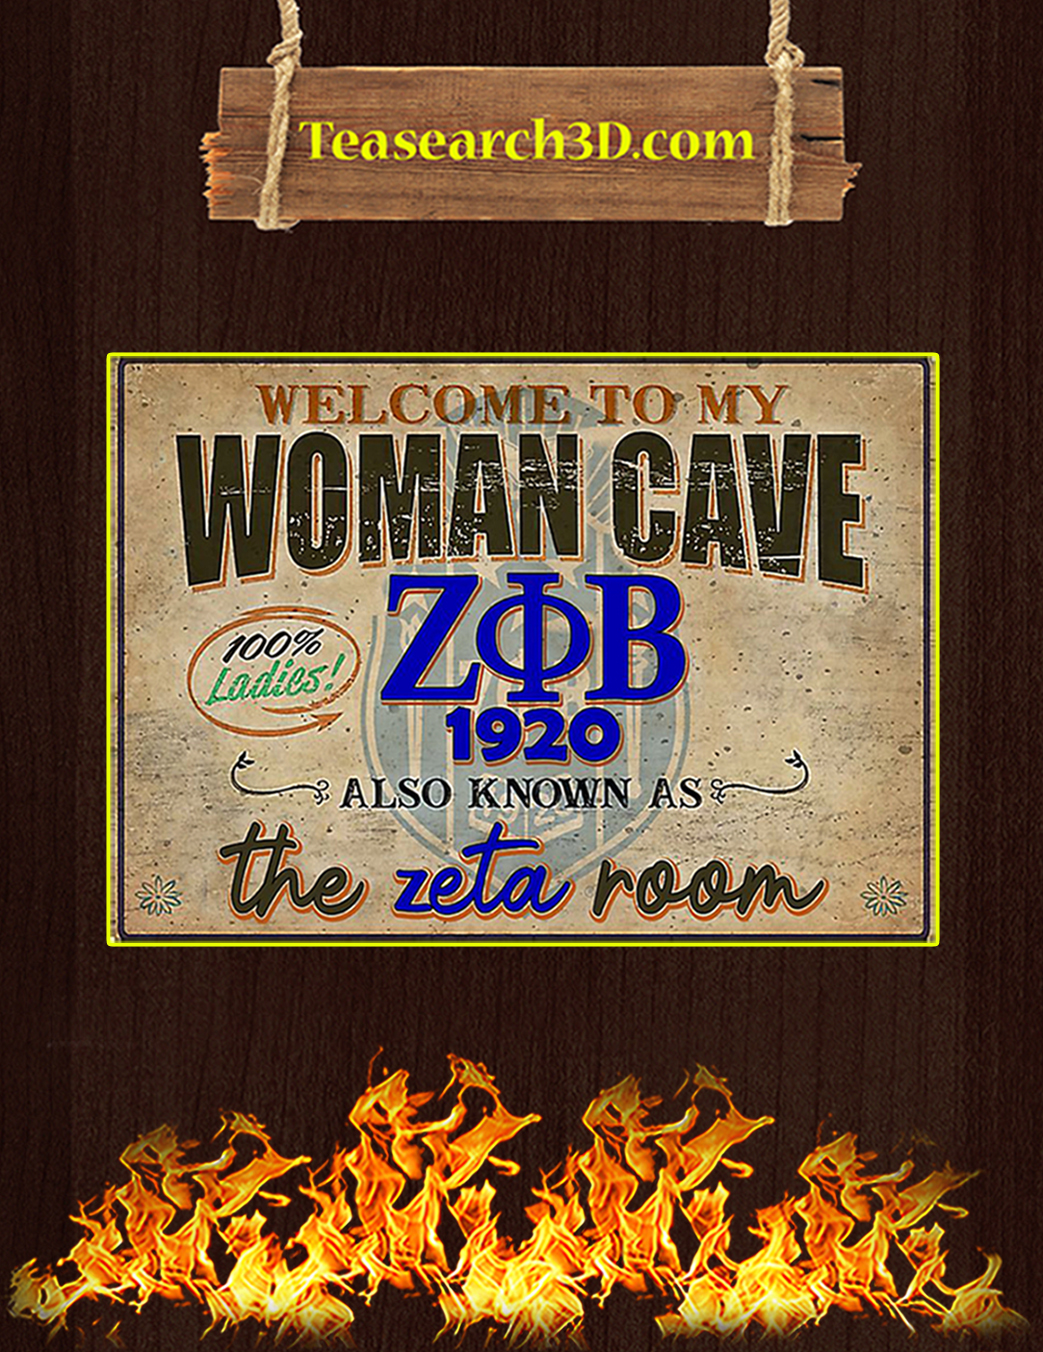 Welcome to my woman cave zeta phi beta 1920 poster A1